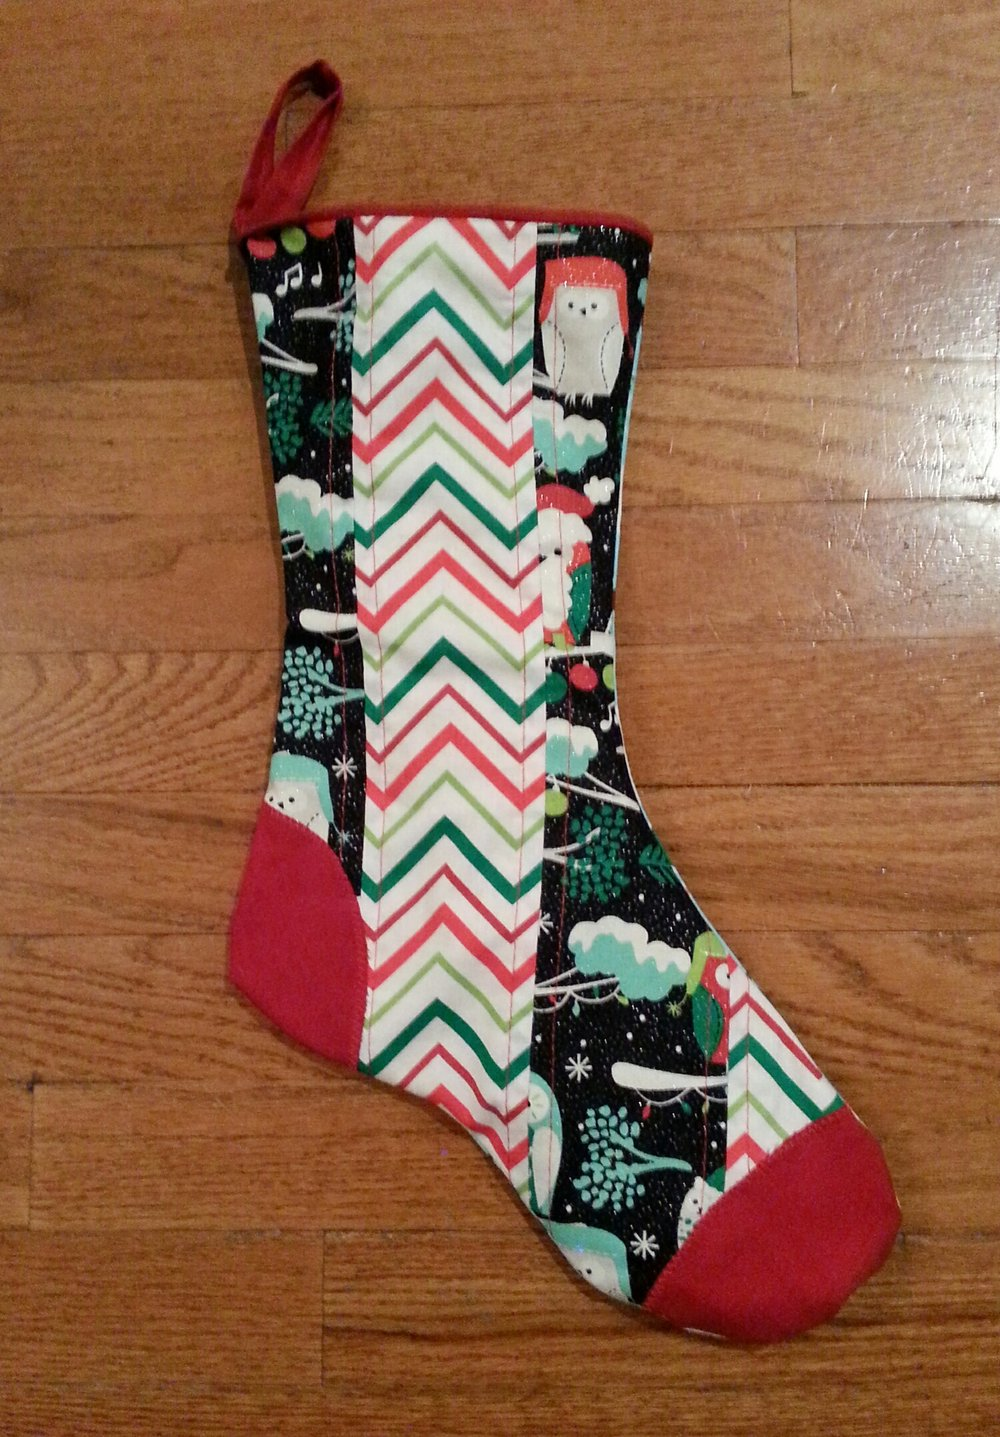 Handsomepants' stocking